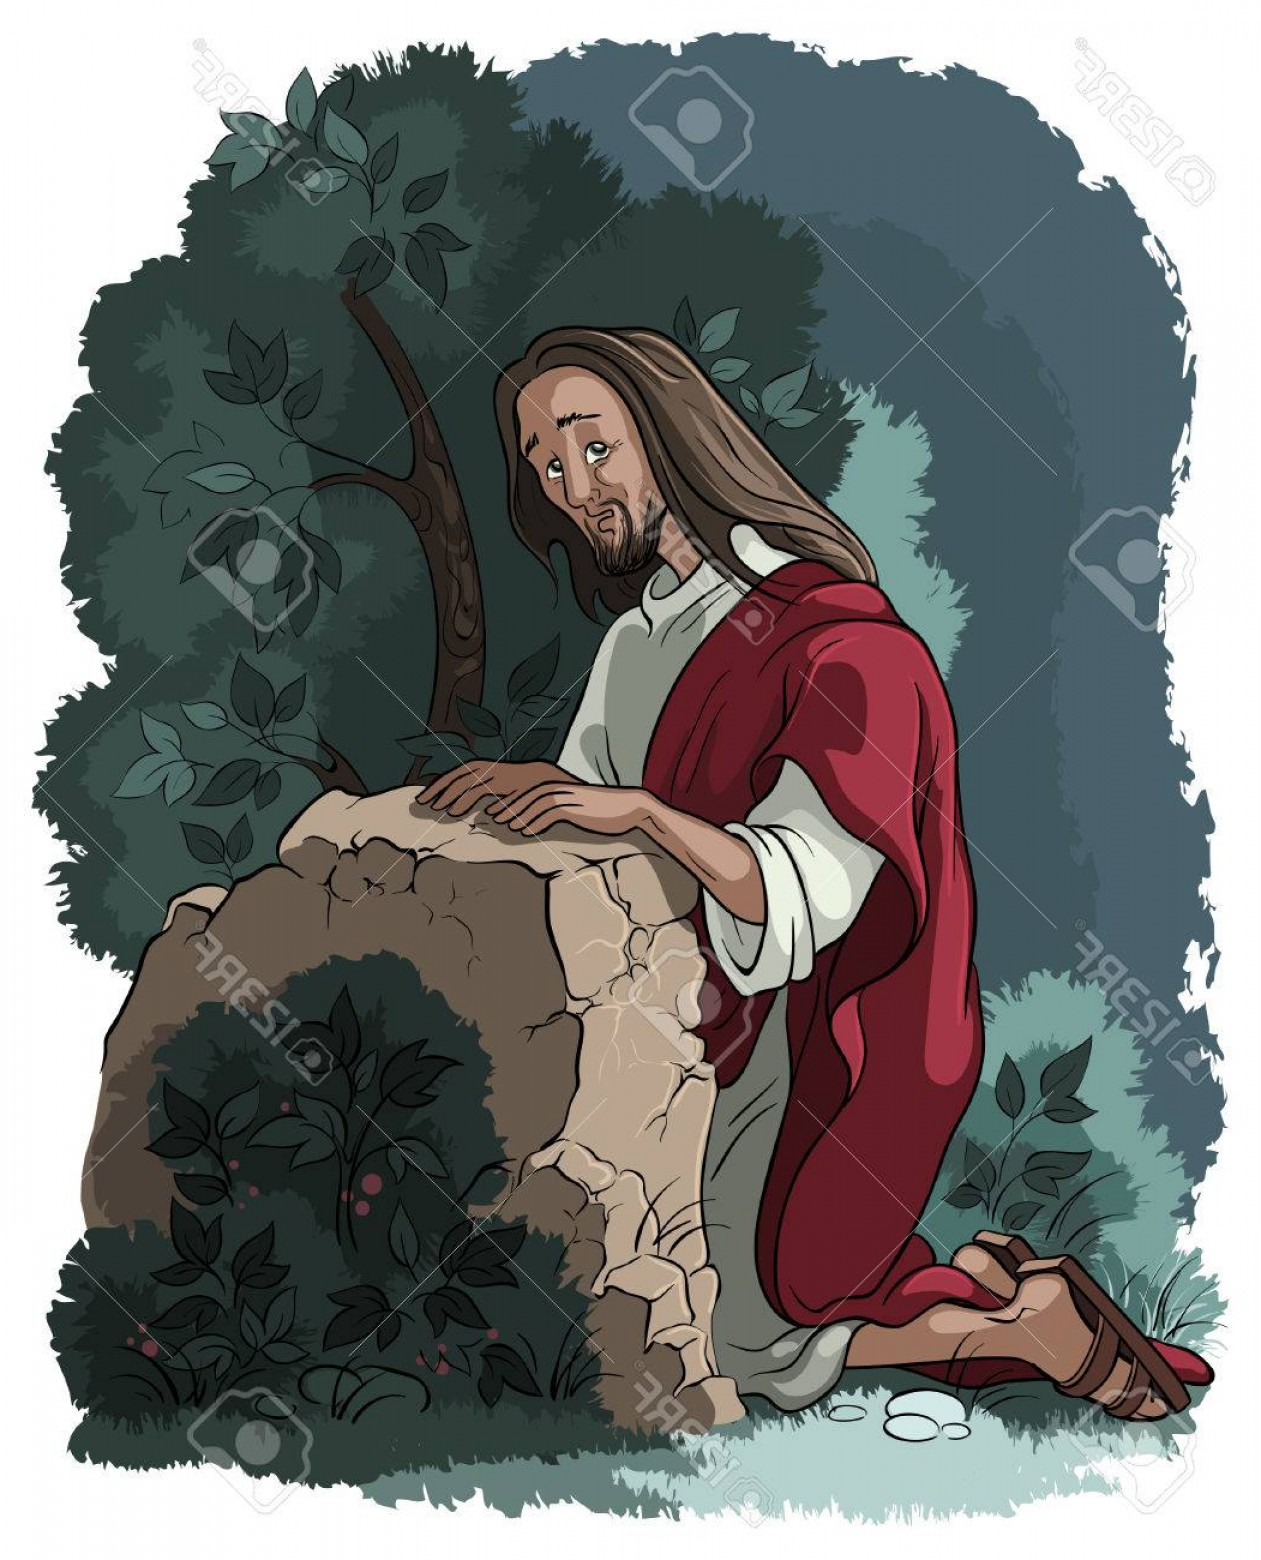 Jesus walking in the garden free clipart clip art black and white stock Jesus Walking In The Garden Free Clipart | GeekChicPro clip art black and white stock